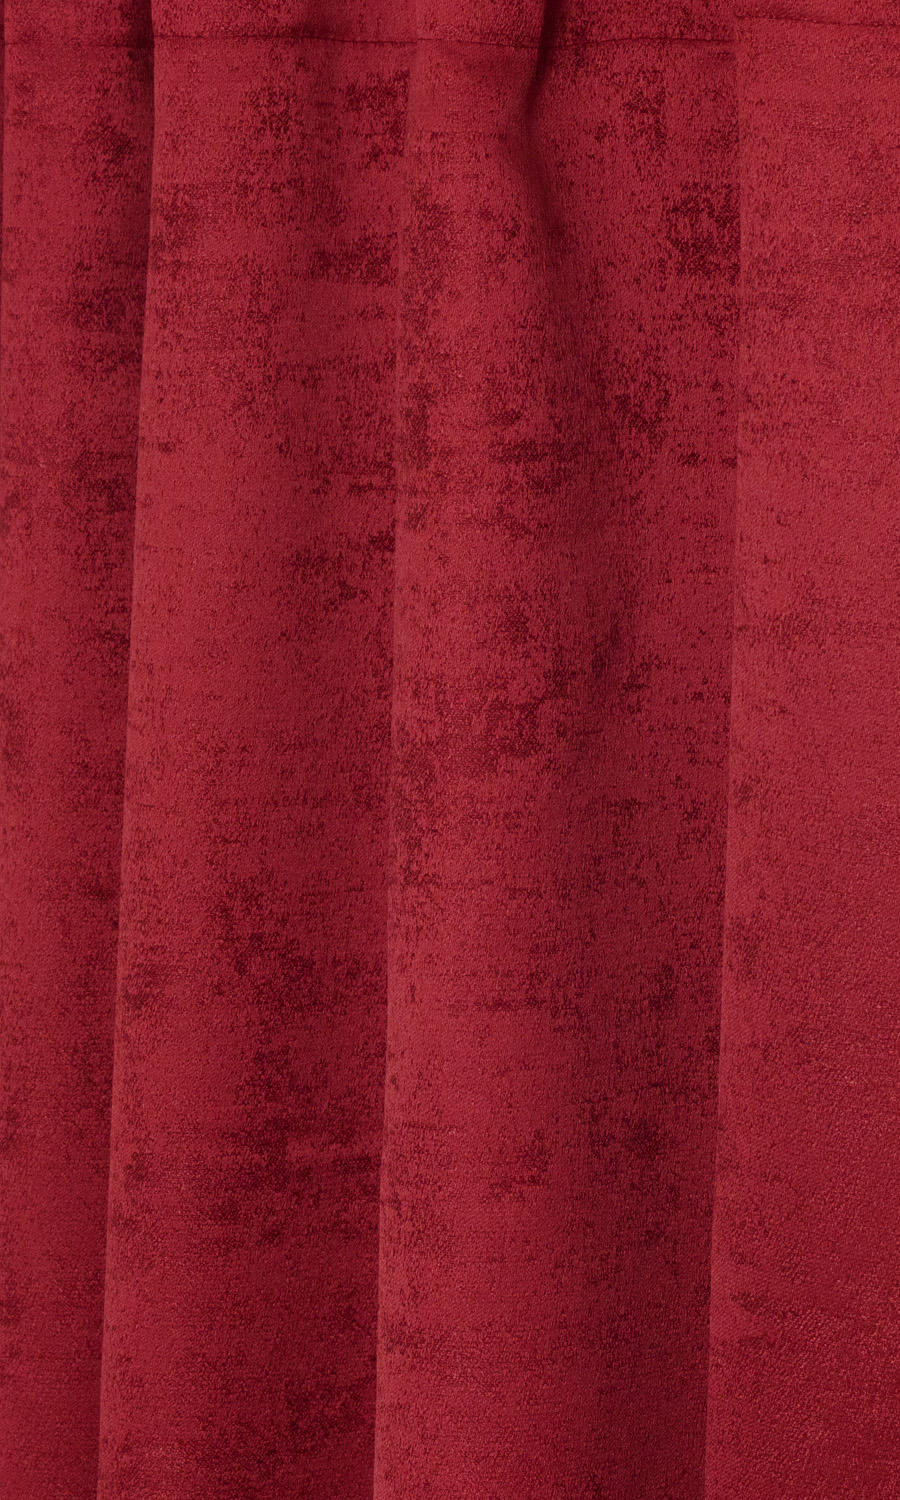 Abstract Affordable Custom Drapery